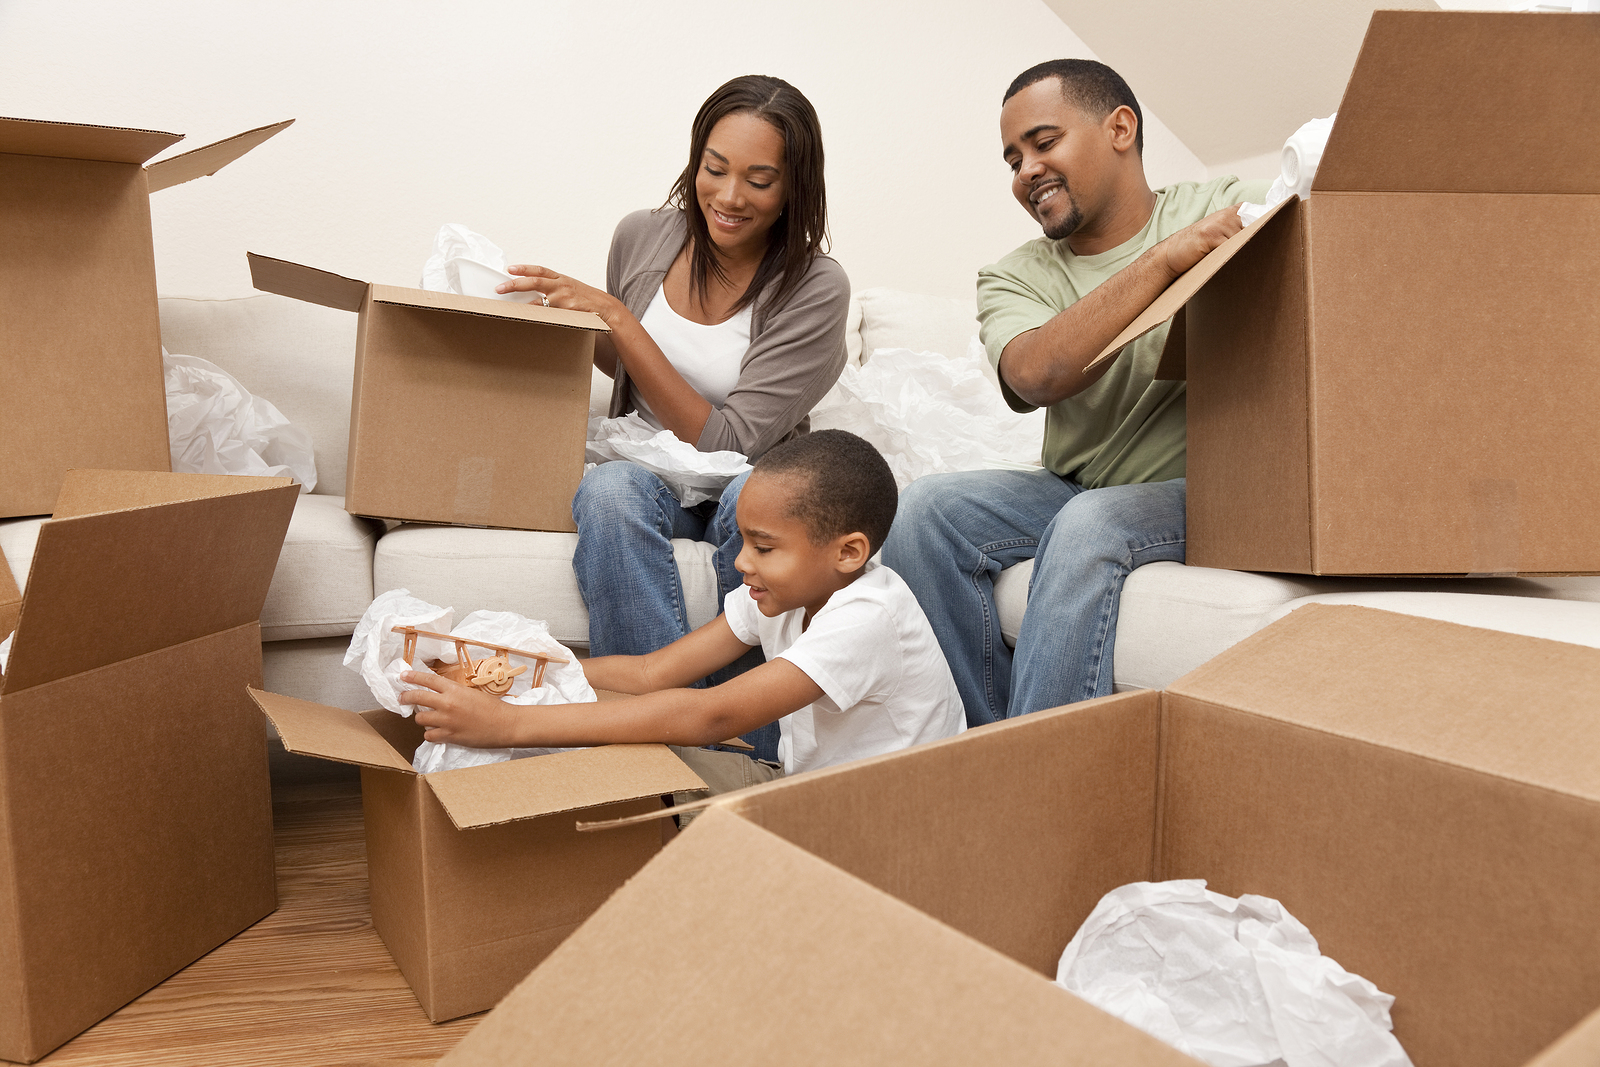 Top Tips To 'Ease The Moving Madness'